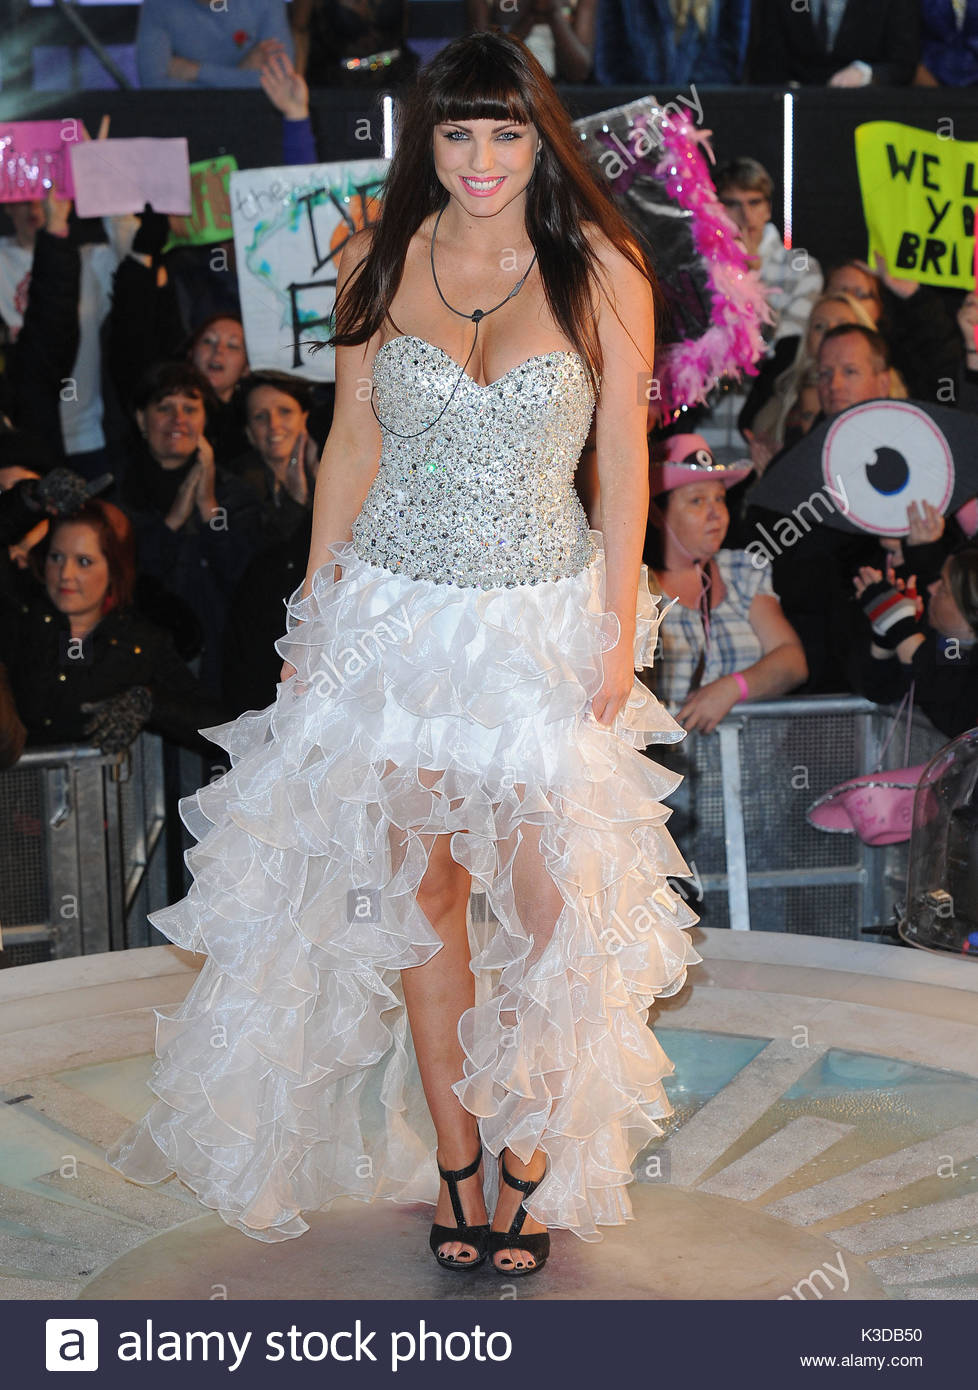 Louise cliffe big brother naked (53 photos), Feet Celebrity pics